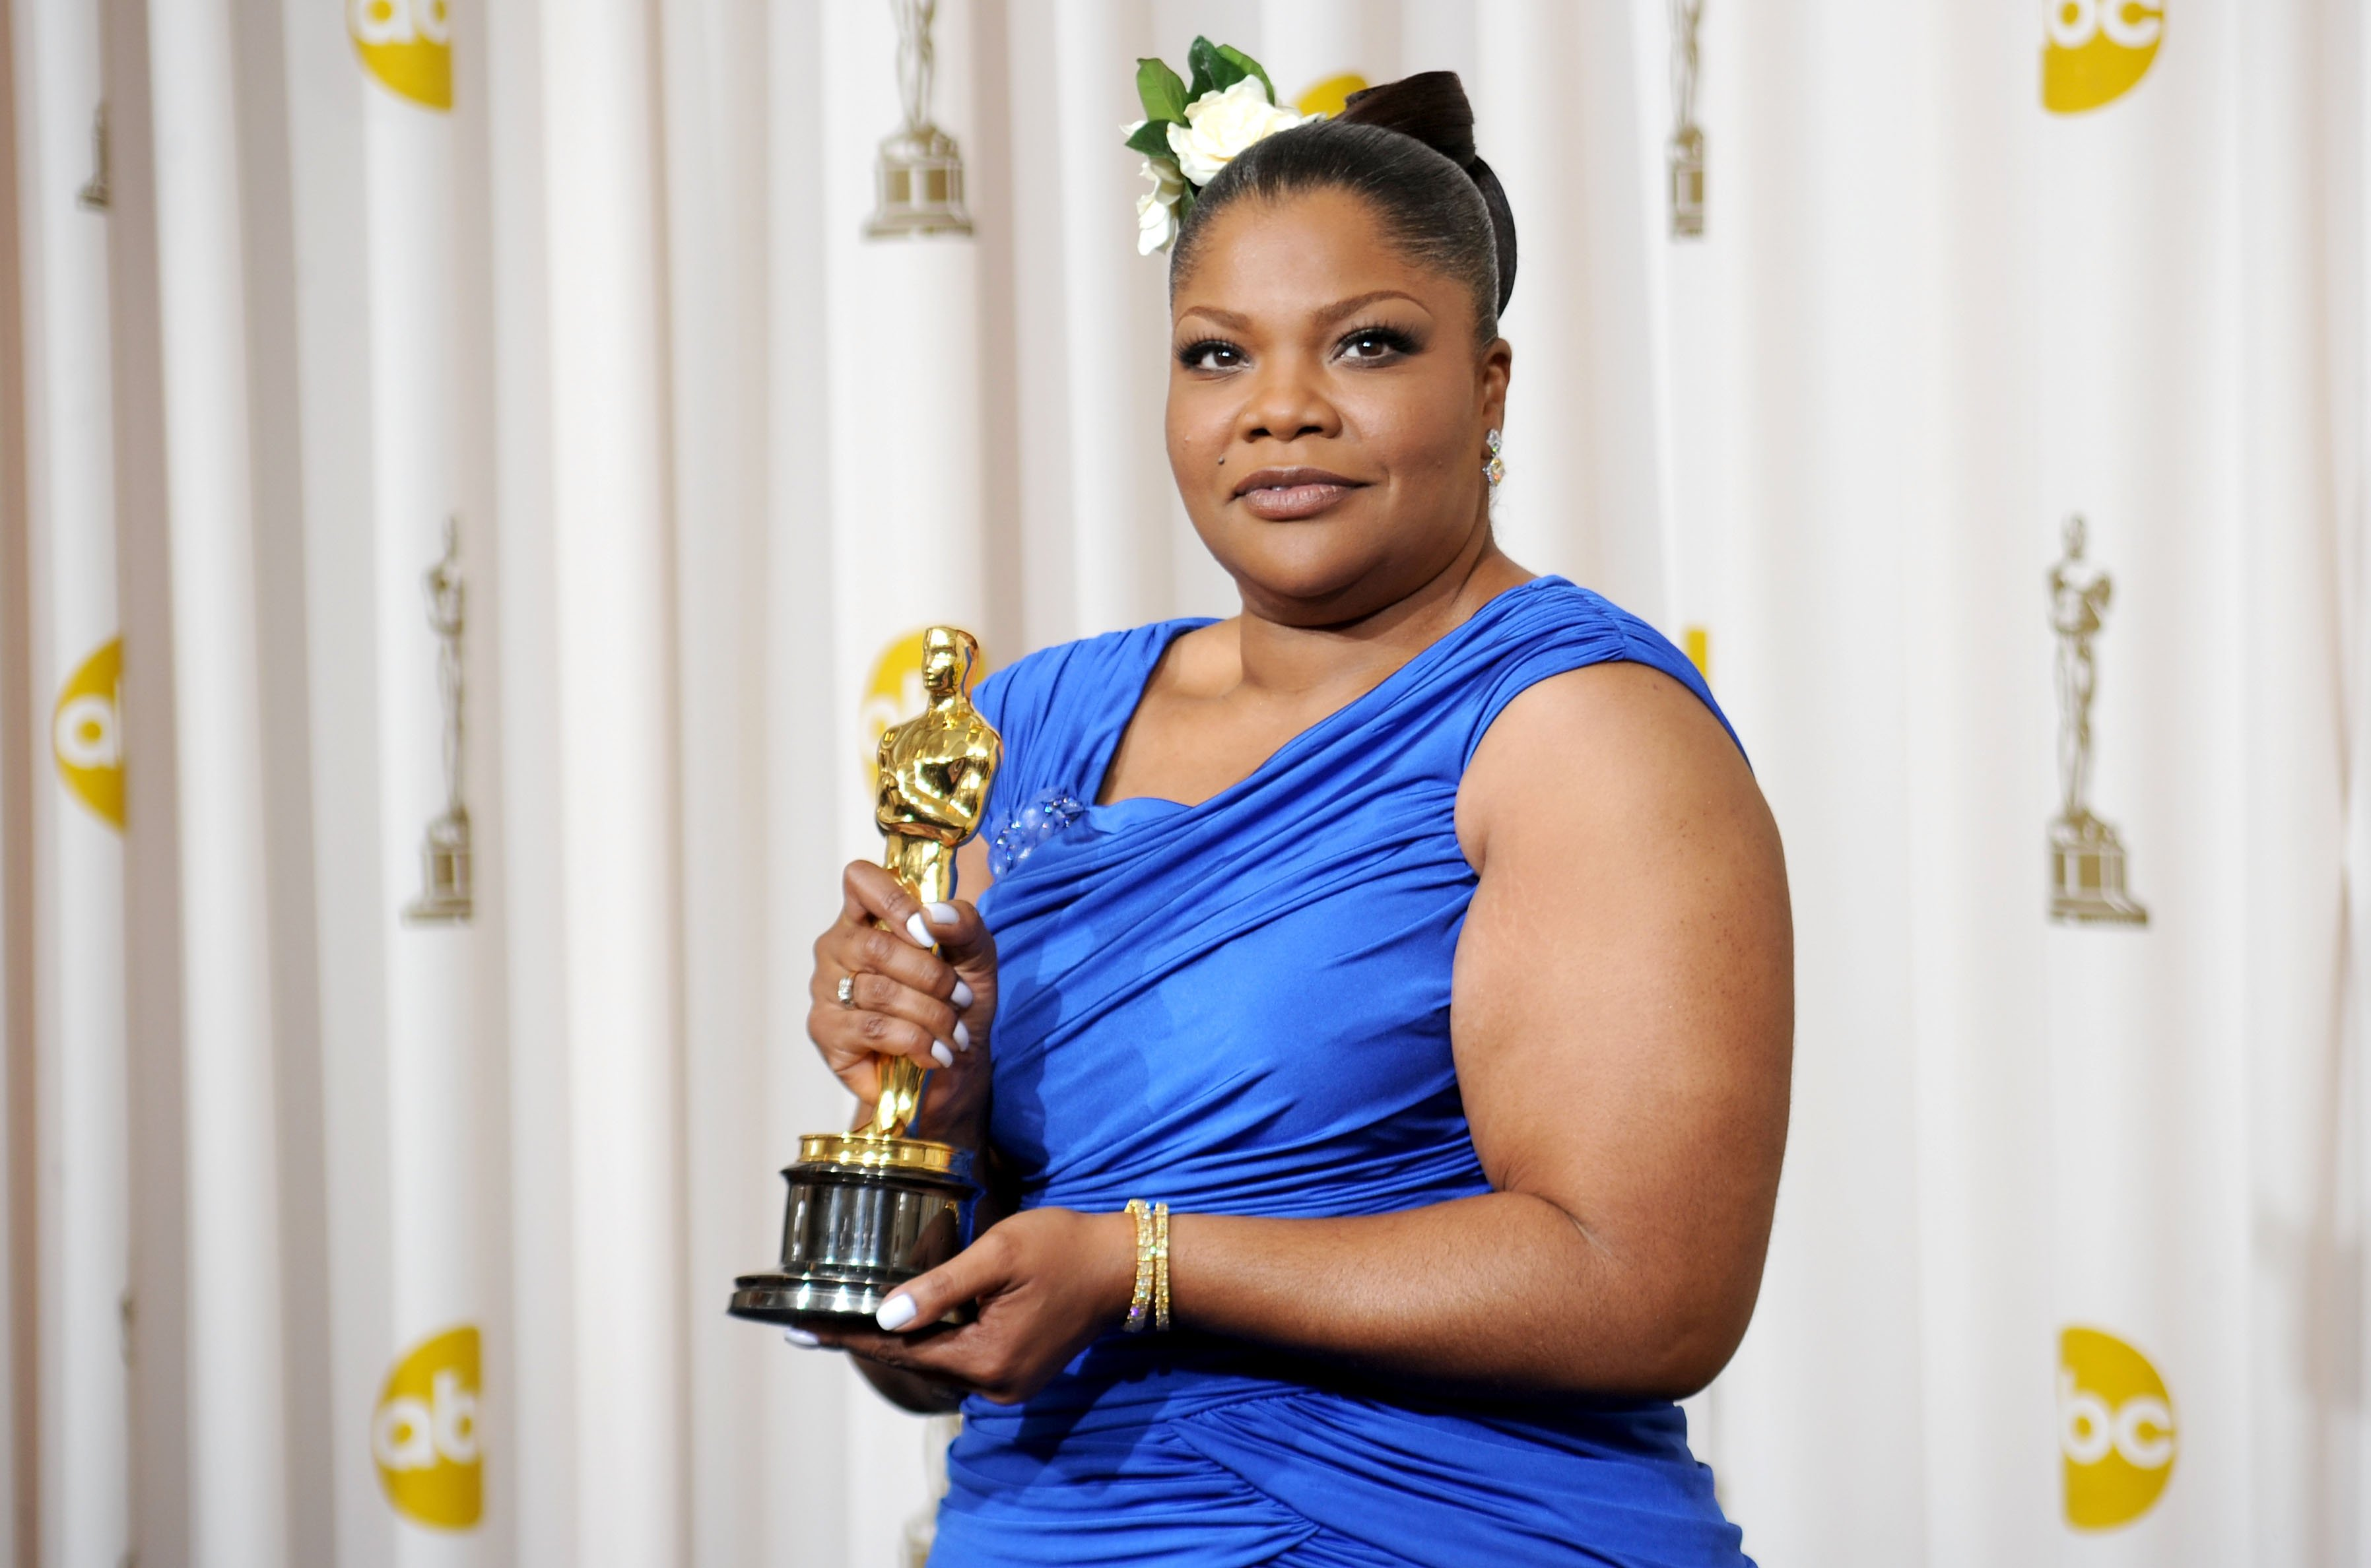 """Actress Mo'Nique, winner of the Best Supporting Actress award for """"Precious"""" at the 82nd Annual Academy Awards held at Kodak Theatre on March 7, 2010 in Hollywood, California.   Source: Getty Images"""